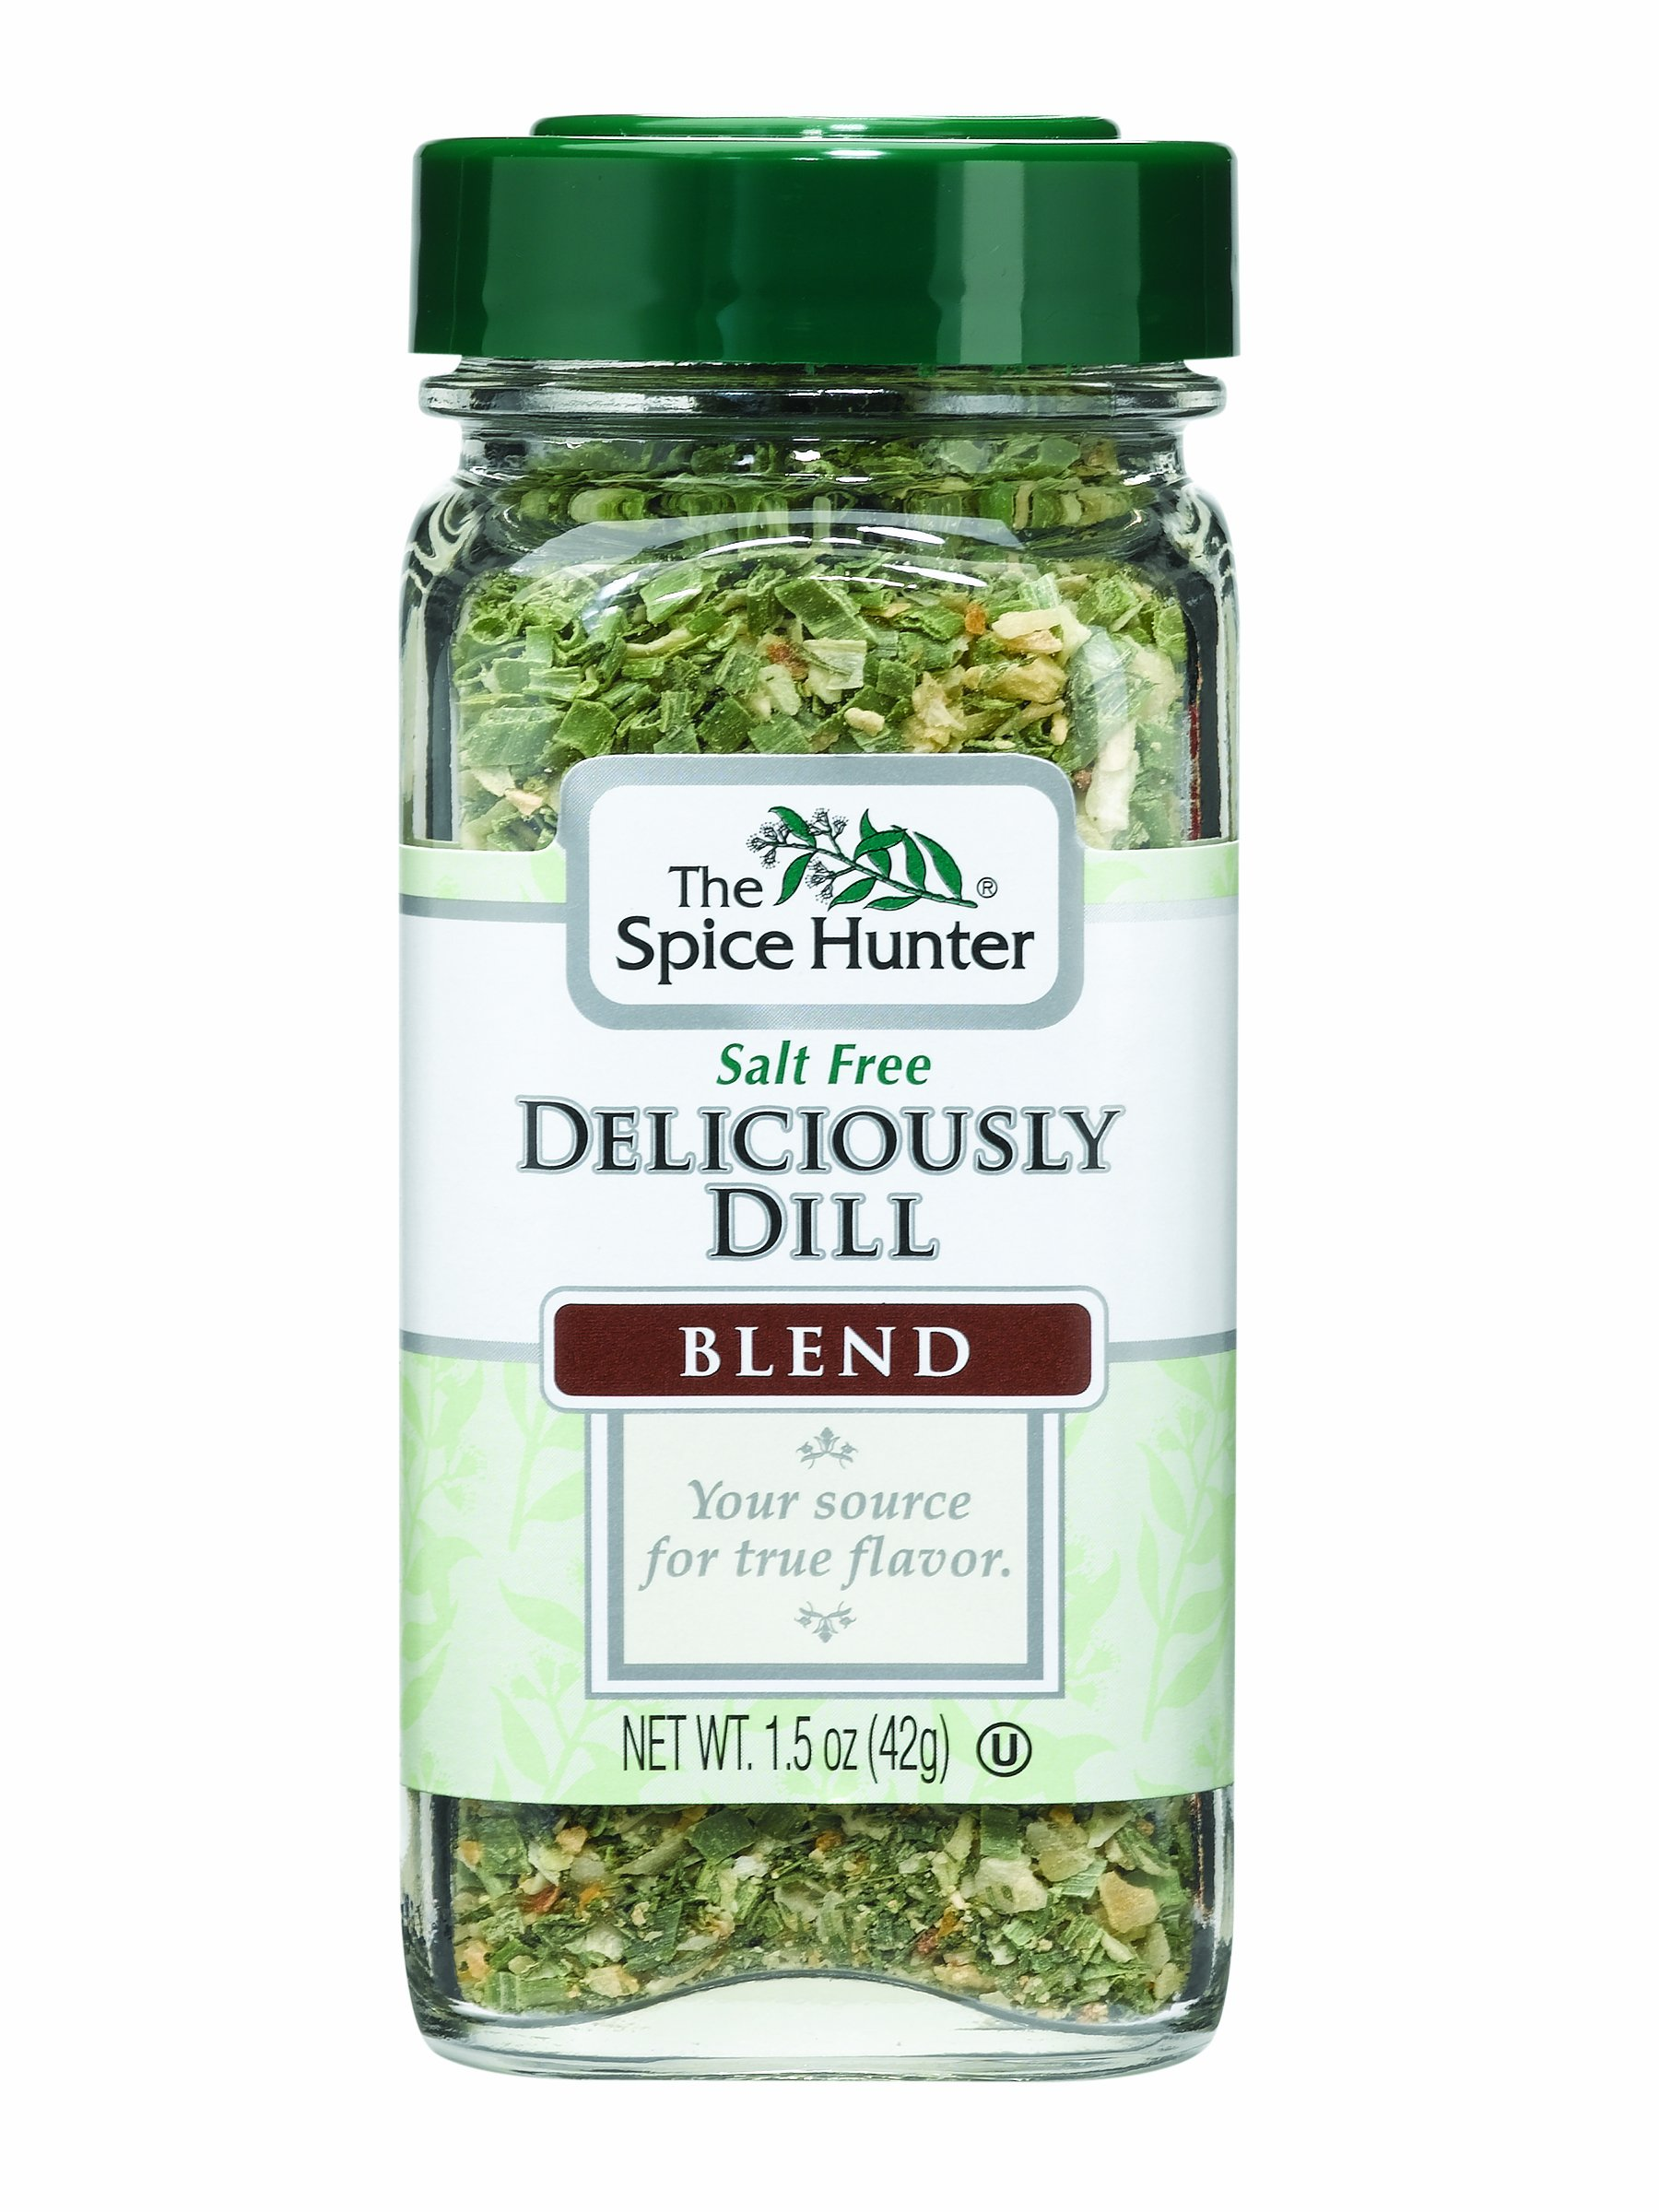 The Spice Hunter Deliciously Dill Blend, 1.5-Ounce Jar